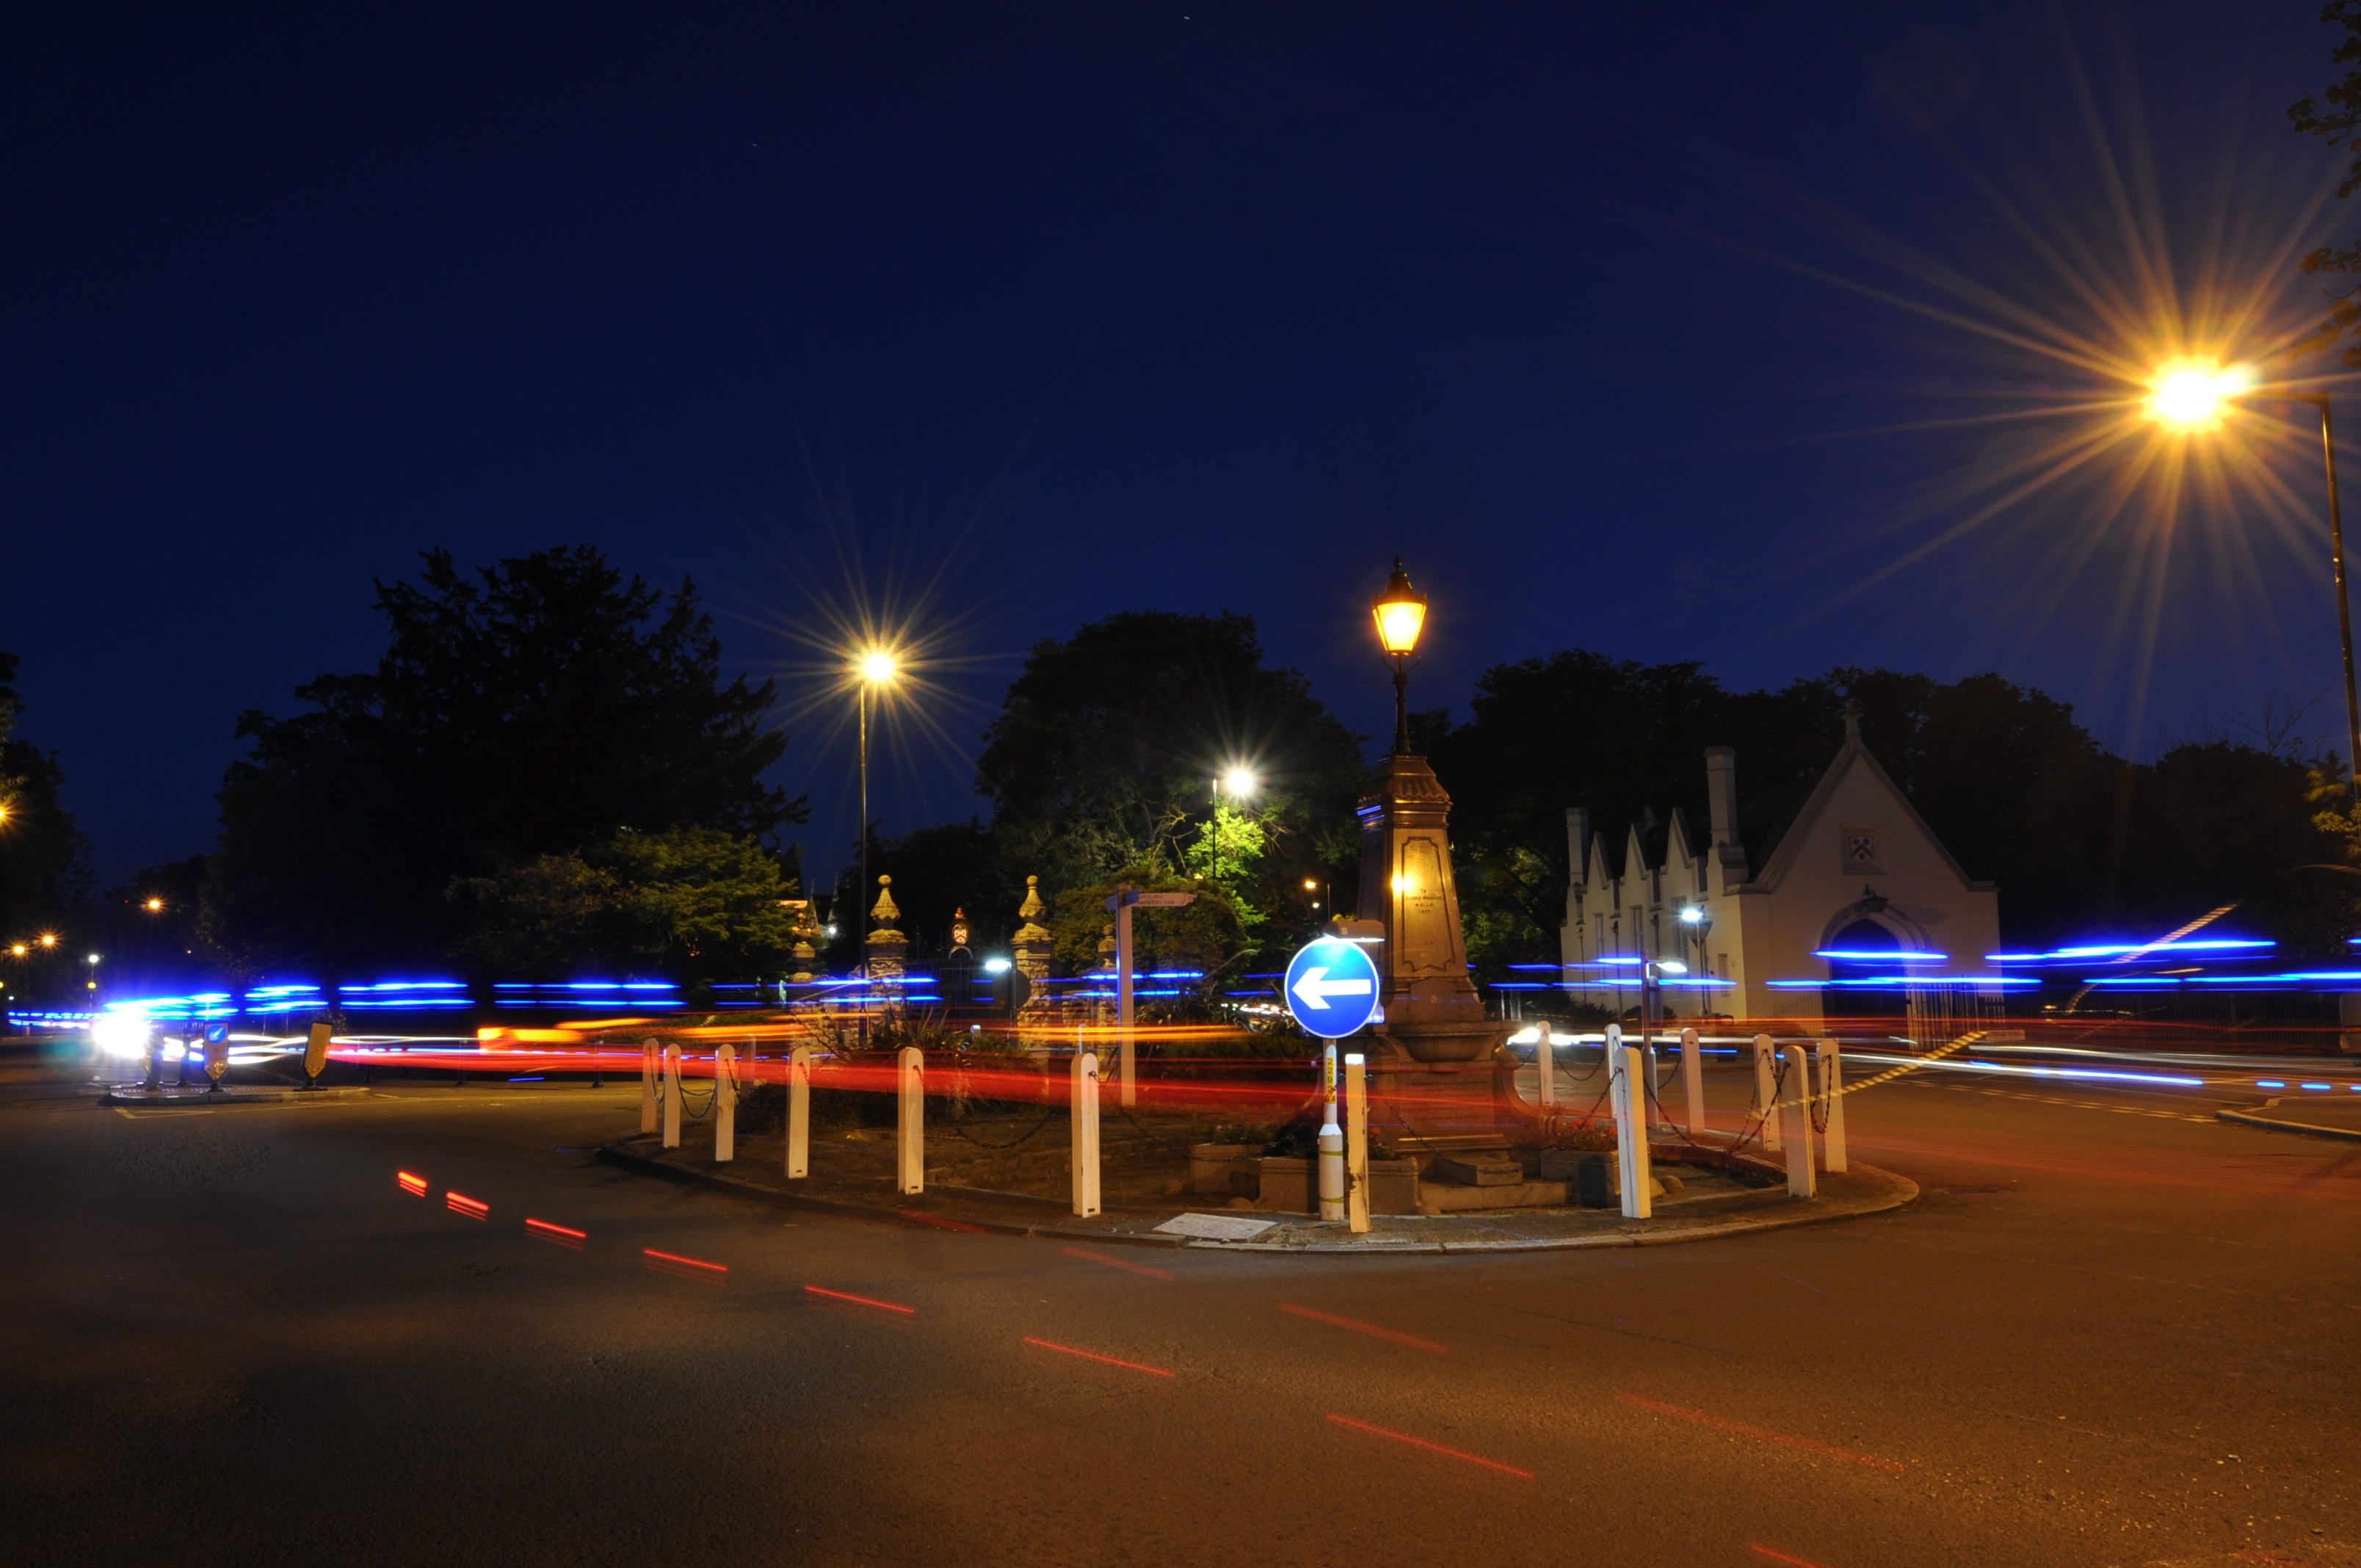 Highly Commended - Hugh Pimblett roundabout at night, slow exposure.